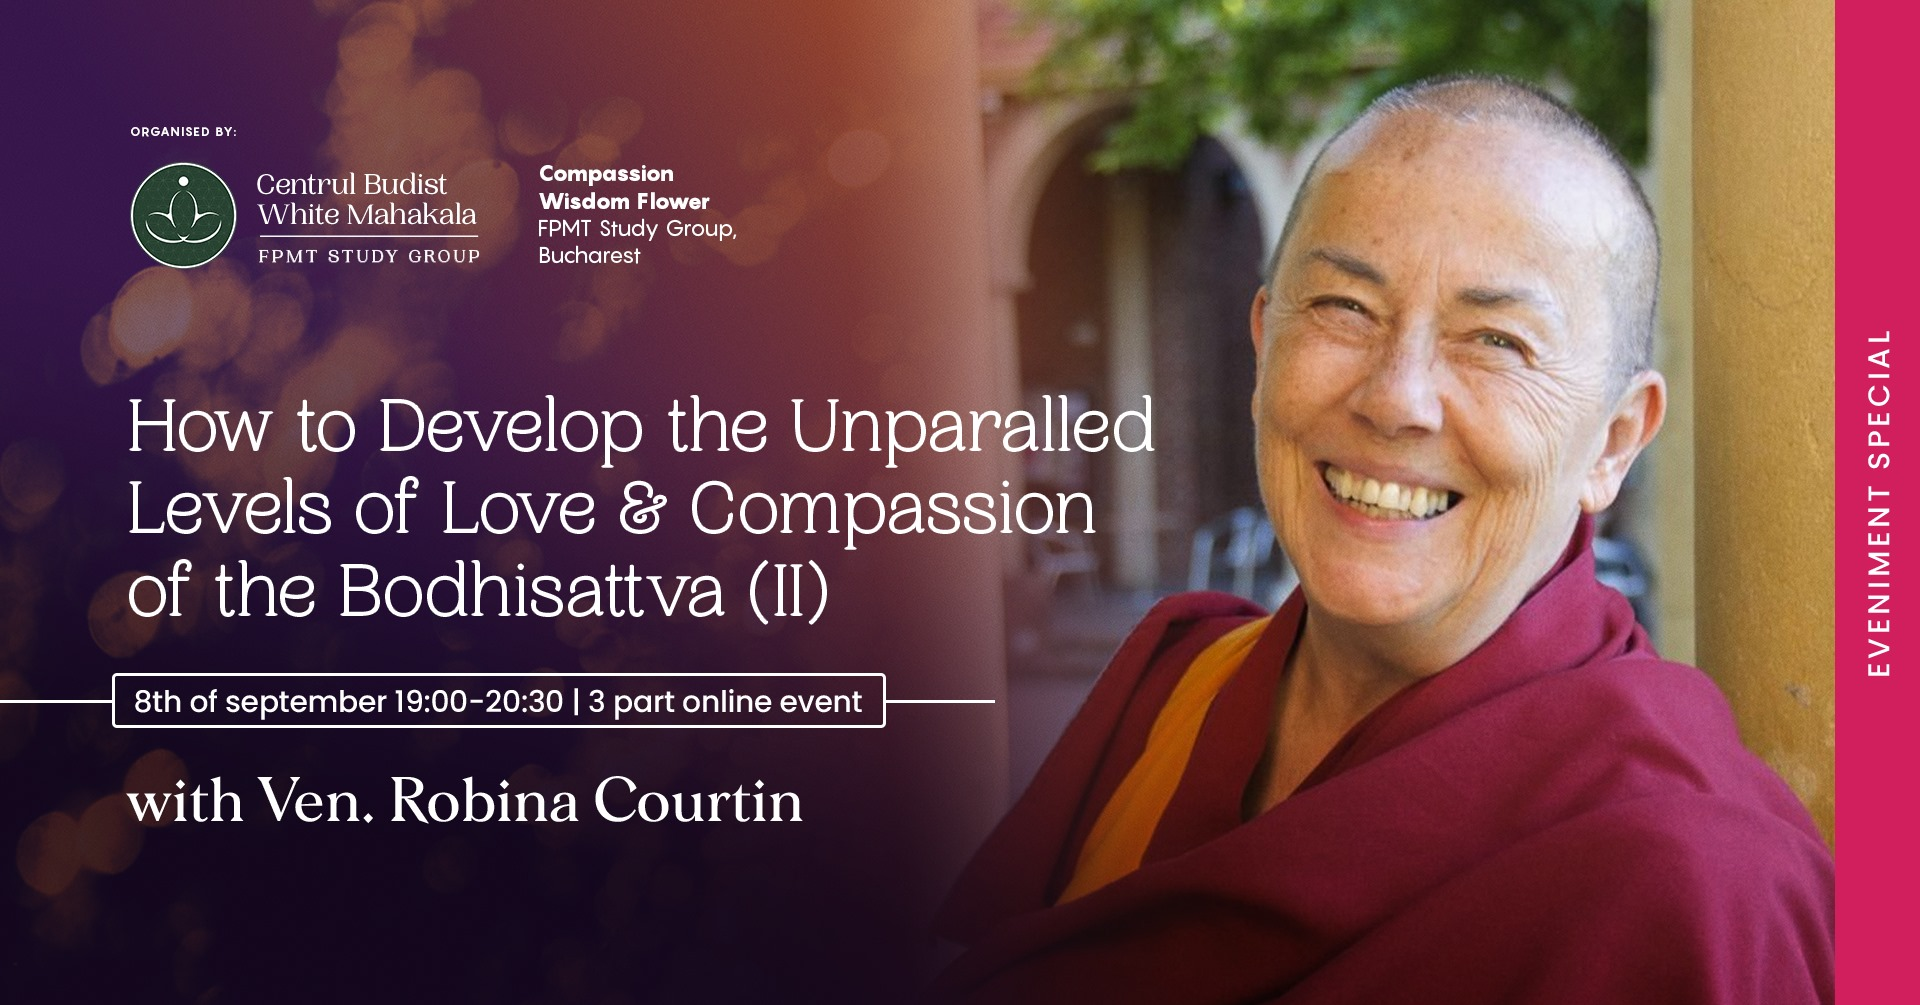 How to develop the Unparalleled Levels of Love & Compassion of the Bodhisattva (II)